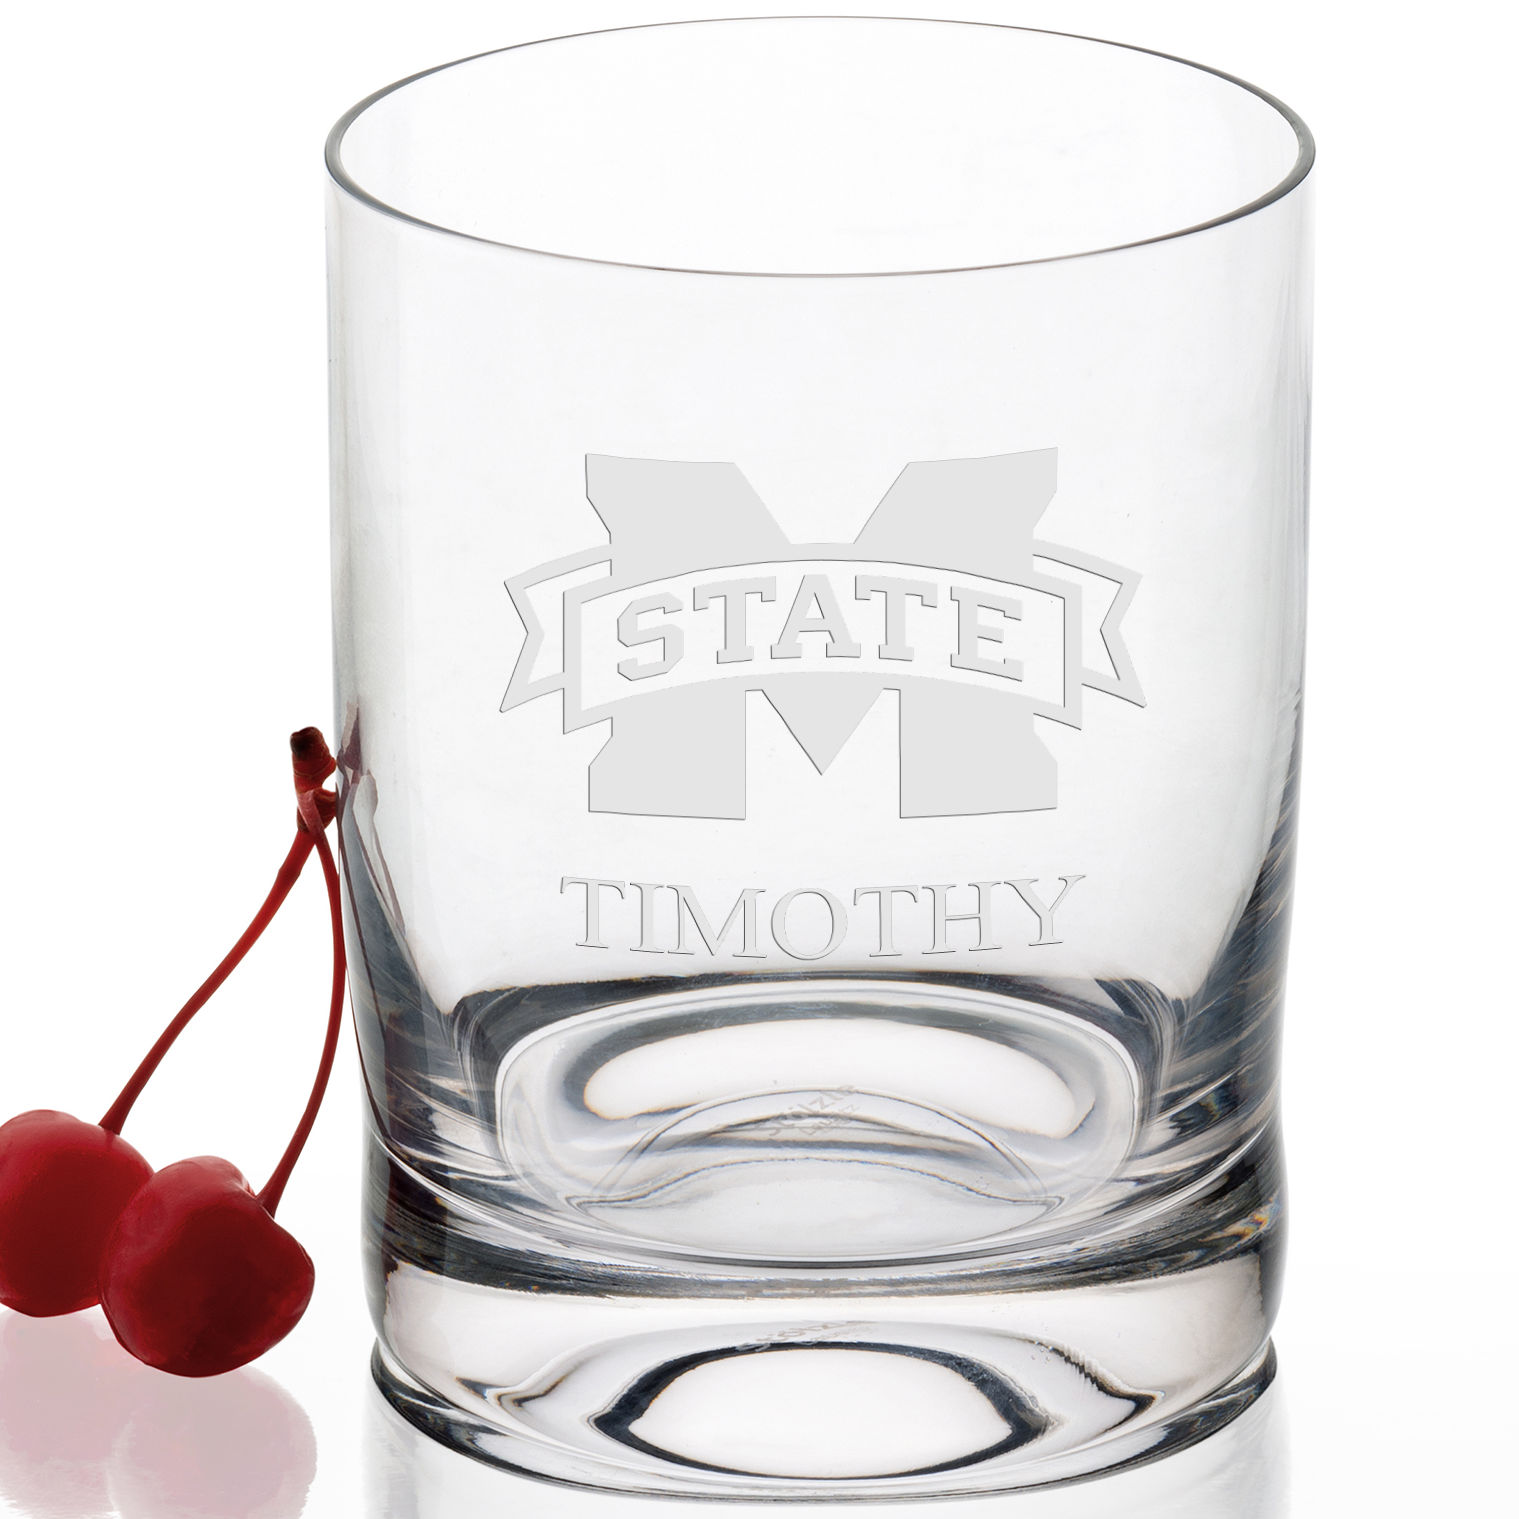 Mississippi State Tumbler Glasses - Set of 2 - Image 2